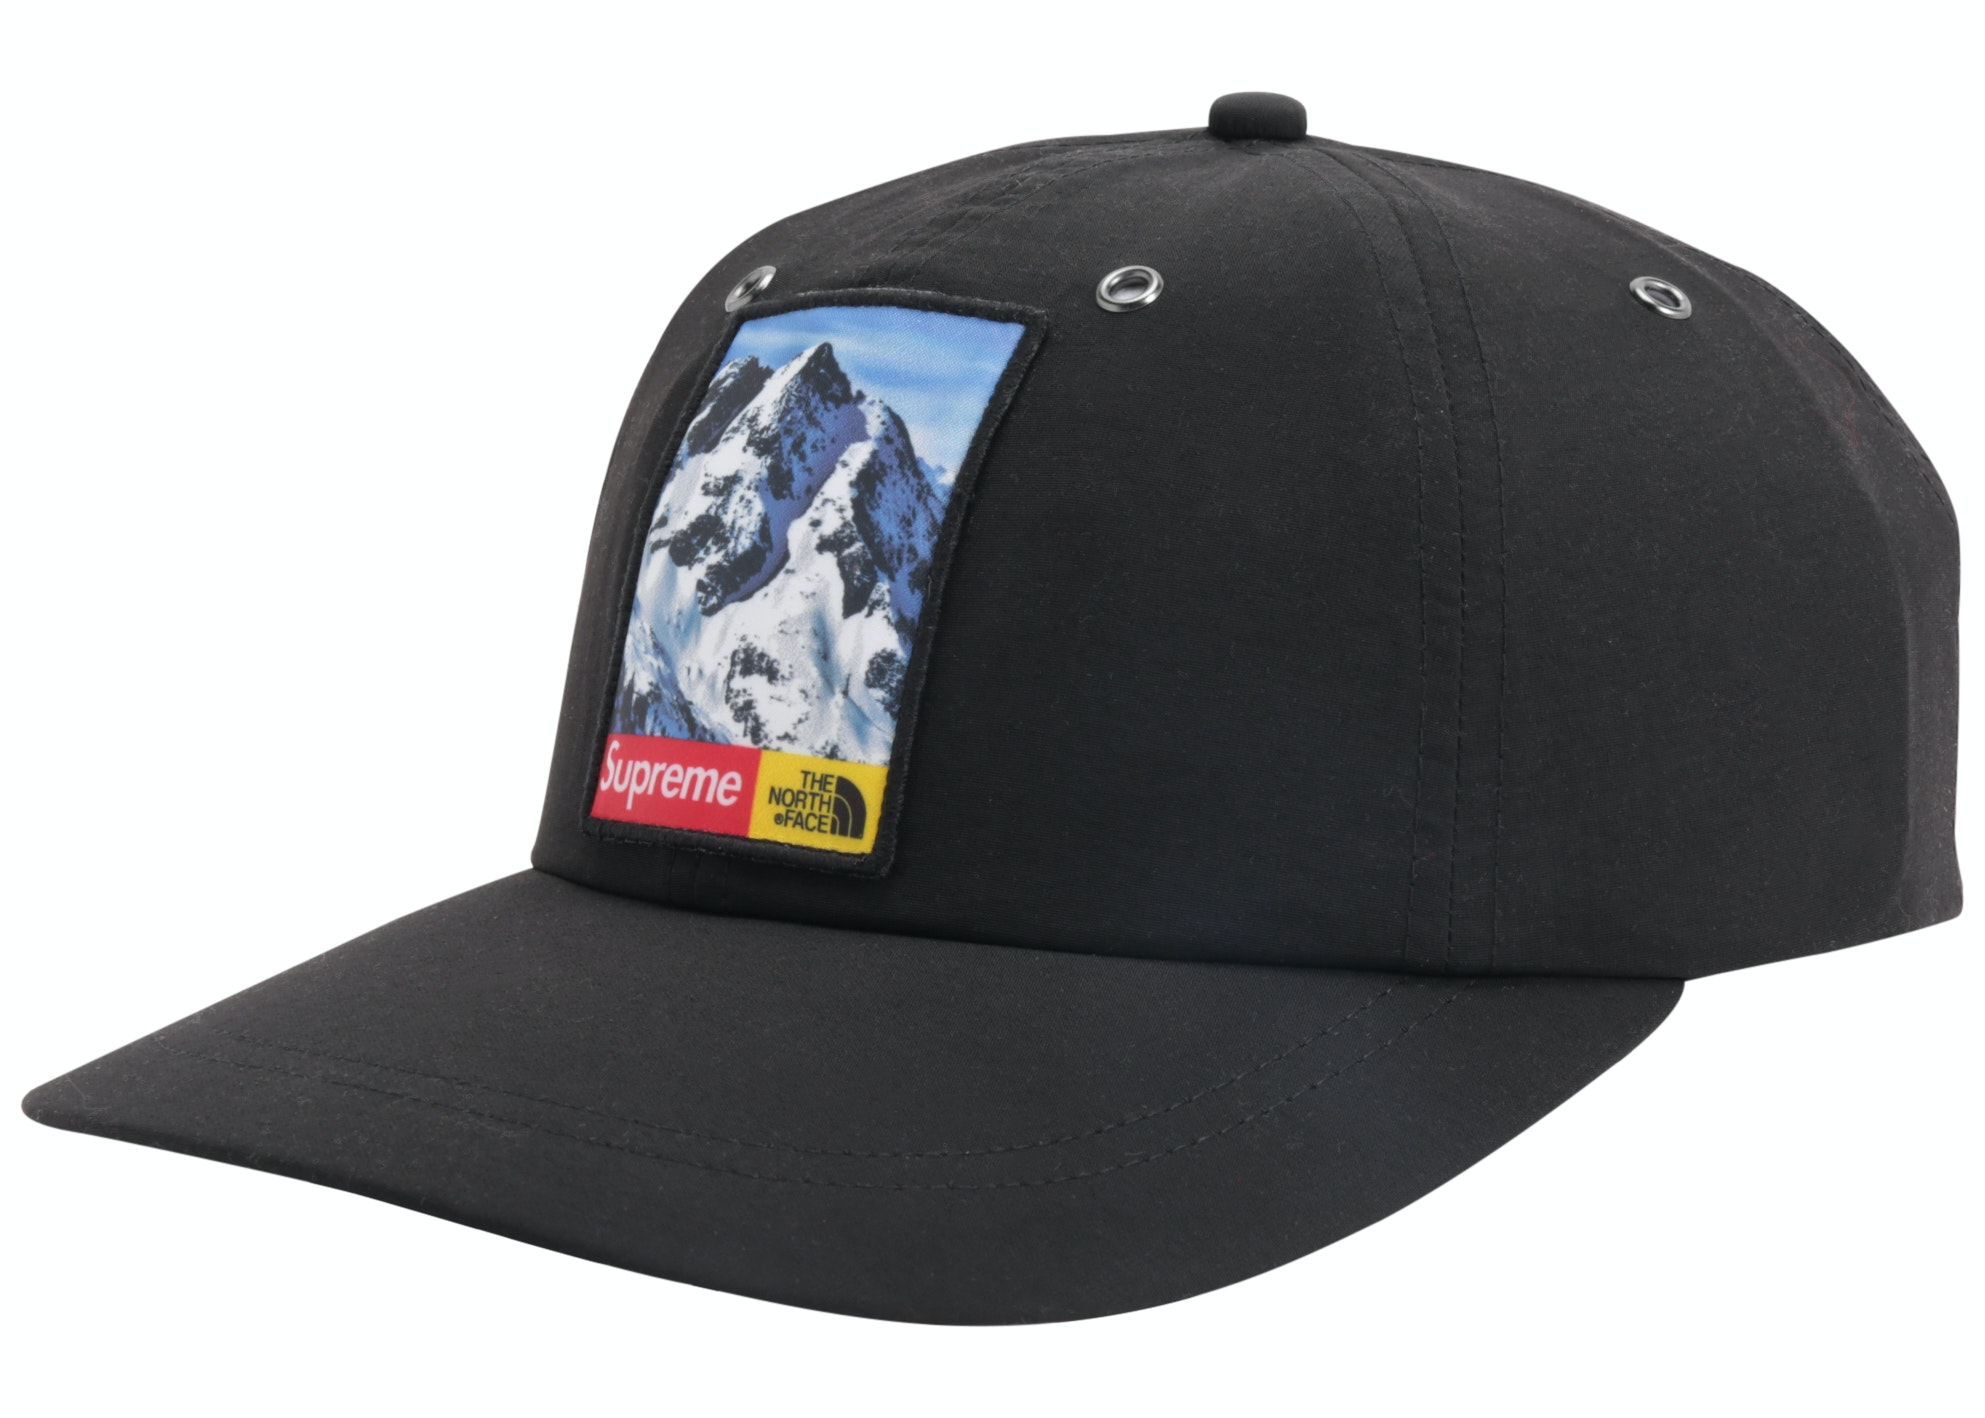 Supreme The North Face Mountain 6-Panel Hat Black